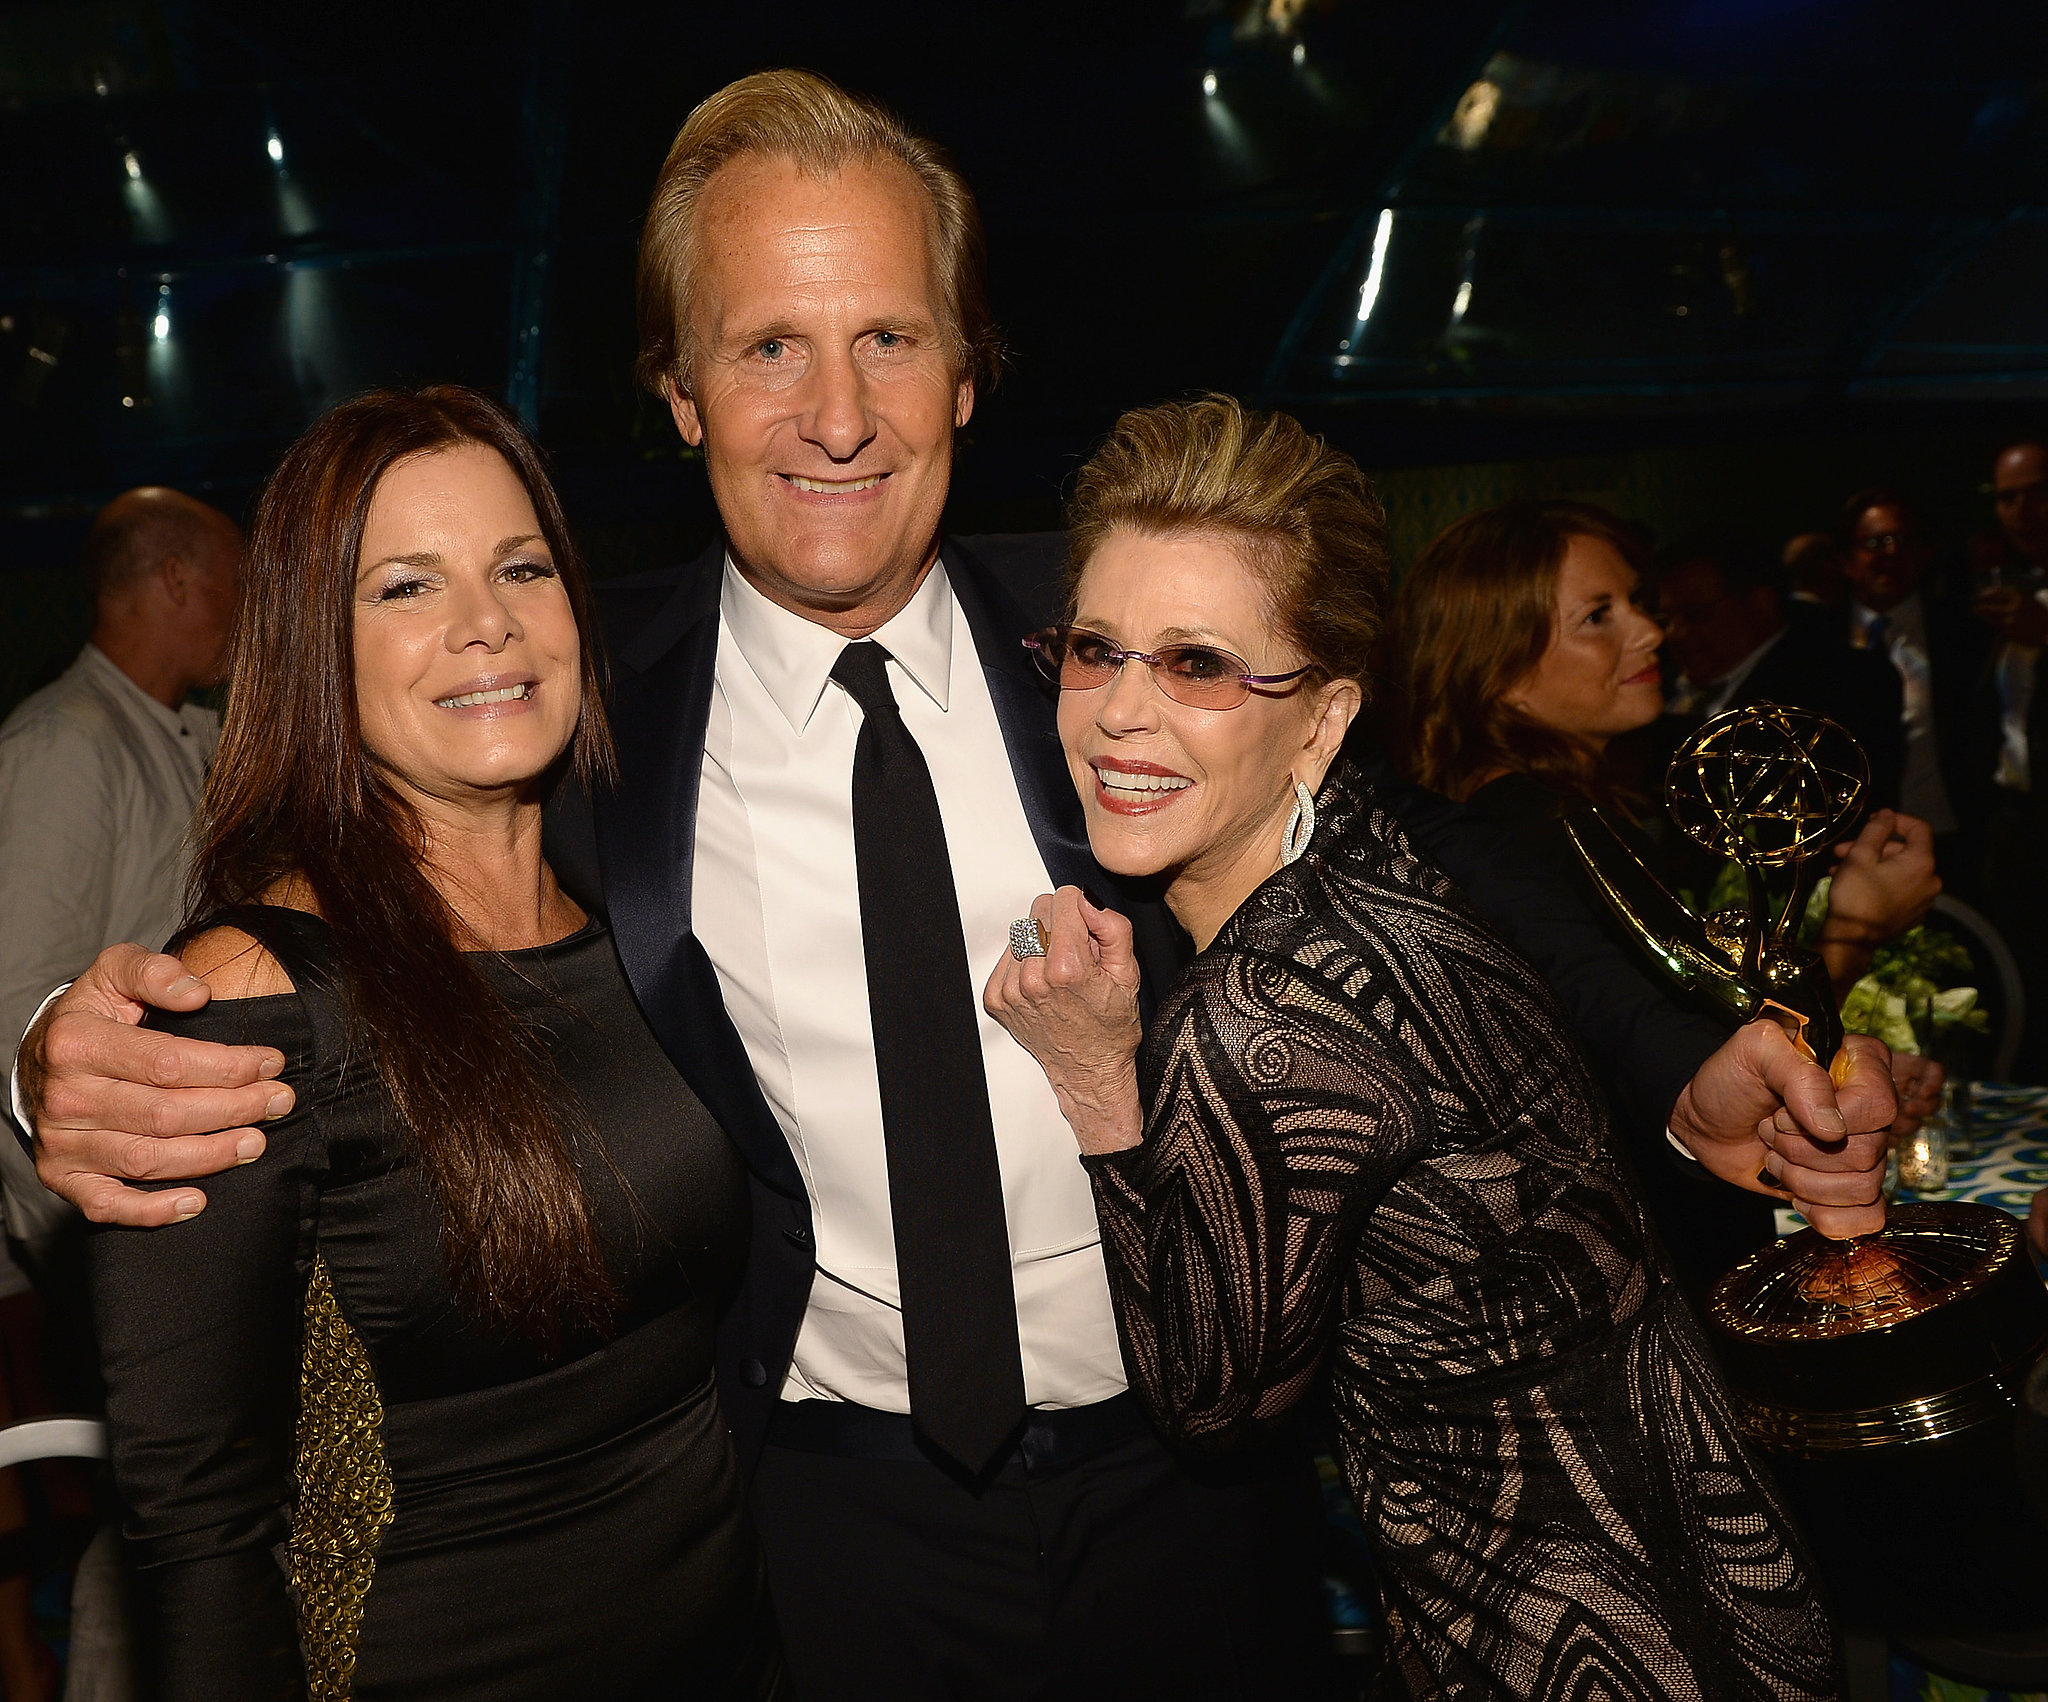 Marcia Gay Harden, Jeff Daniels, and Jane Fonda had fun at the HBO afterparty.